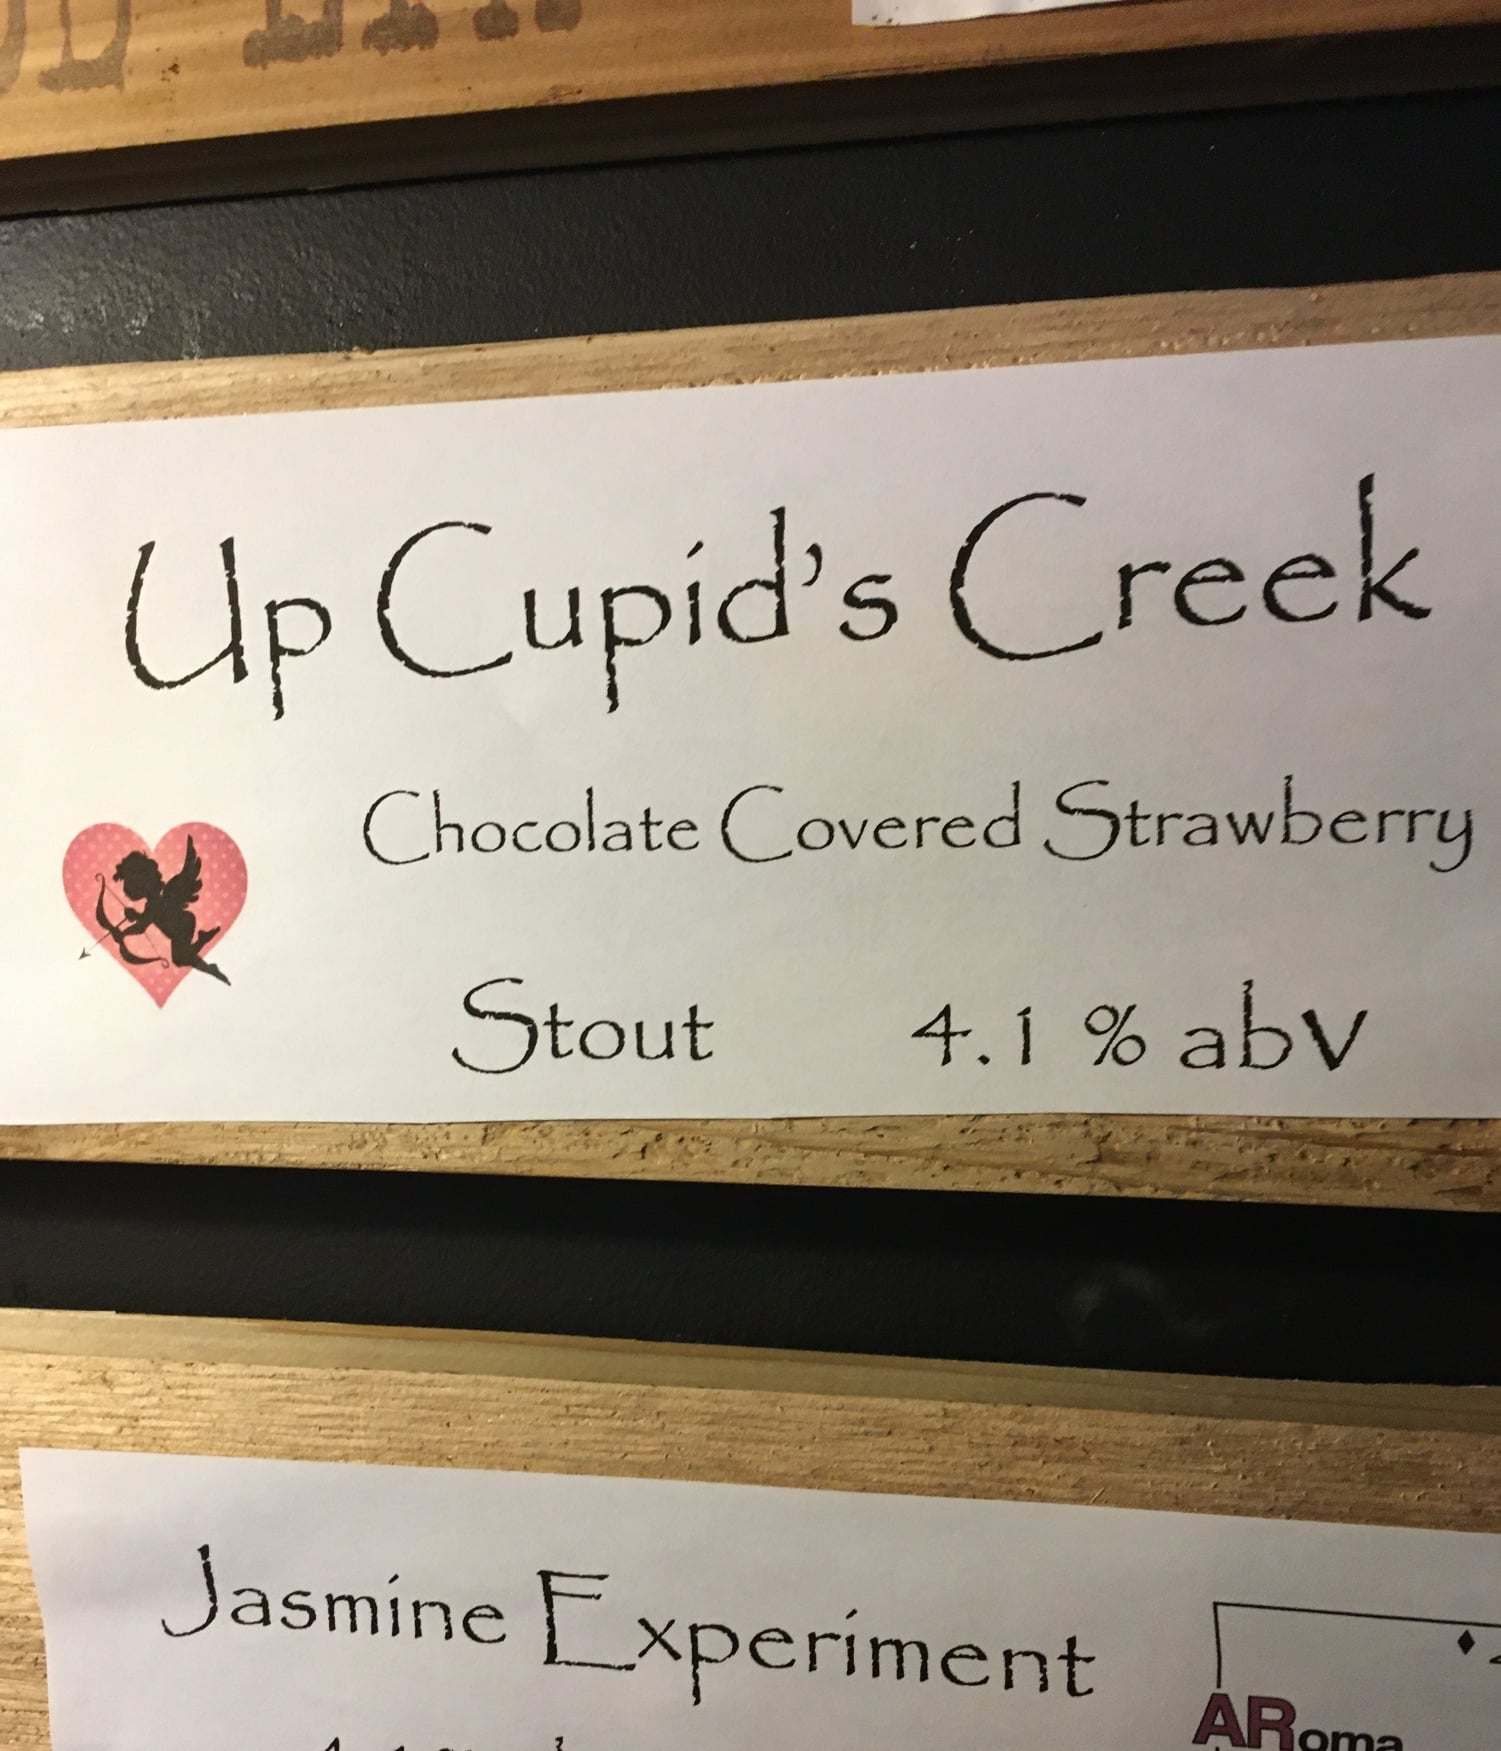 Sign for Up Cupid's Creek  from Hickory Creek brewing